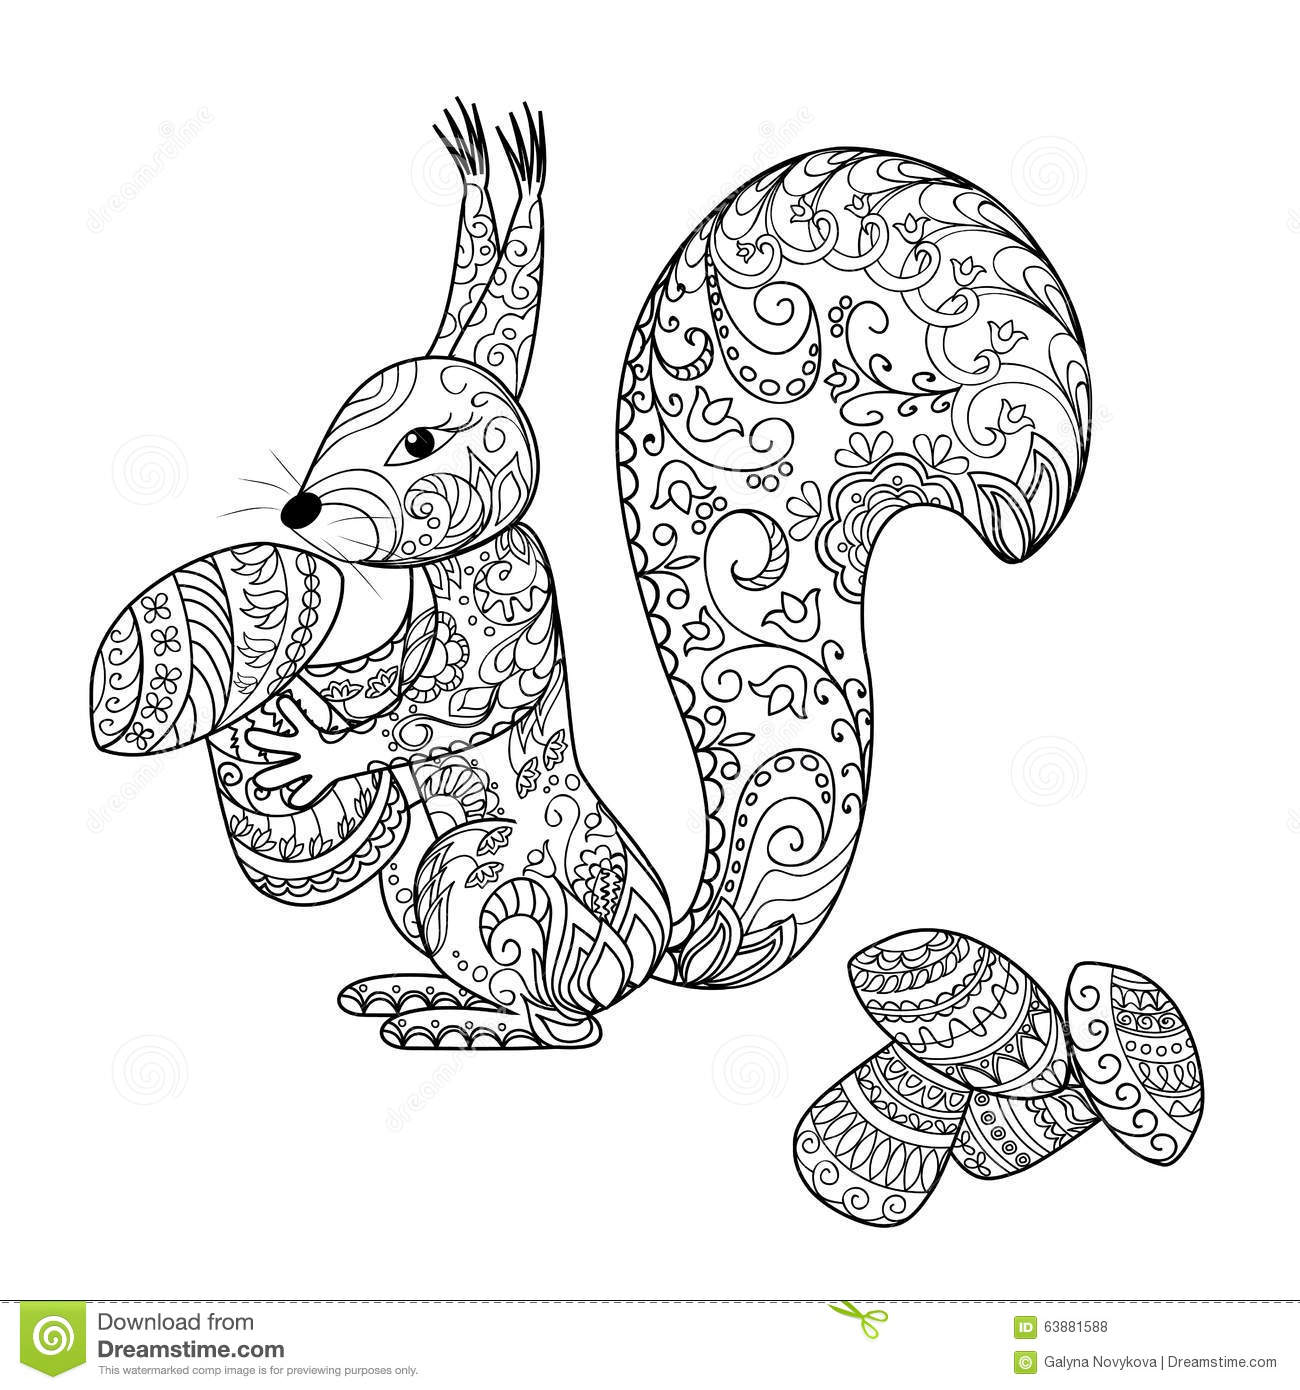 Henna Animals Coloring Pages : Doodle cartoon squirrel and mushrooms stock vector